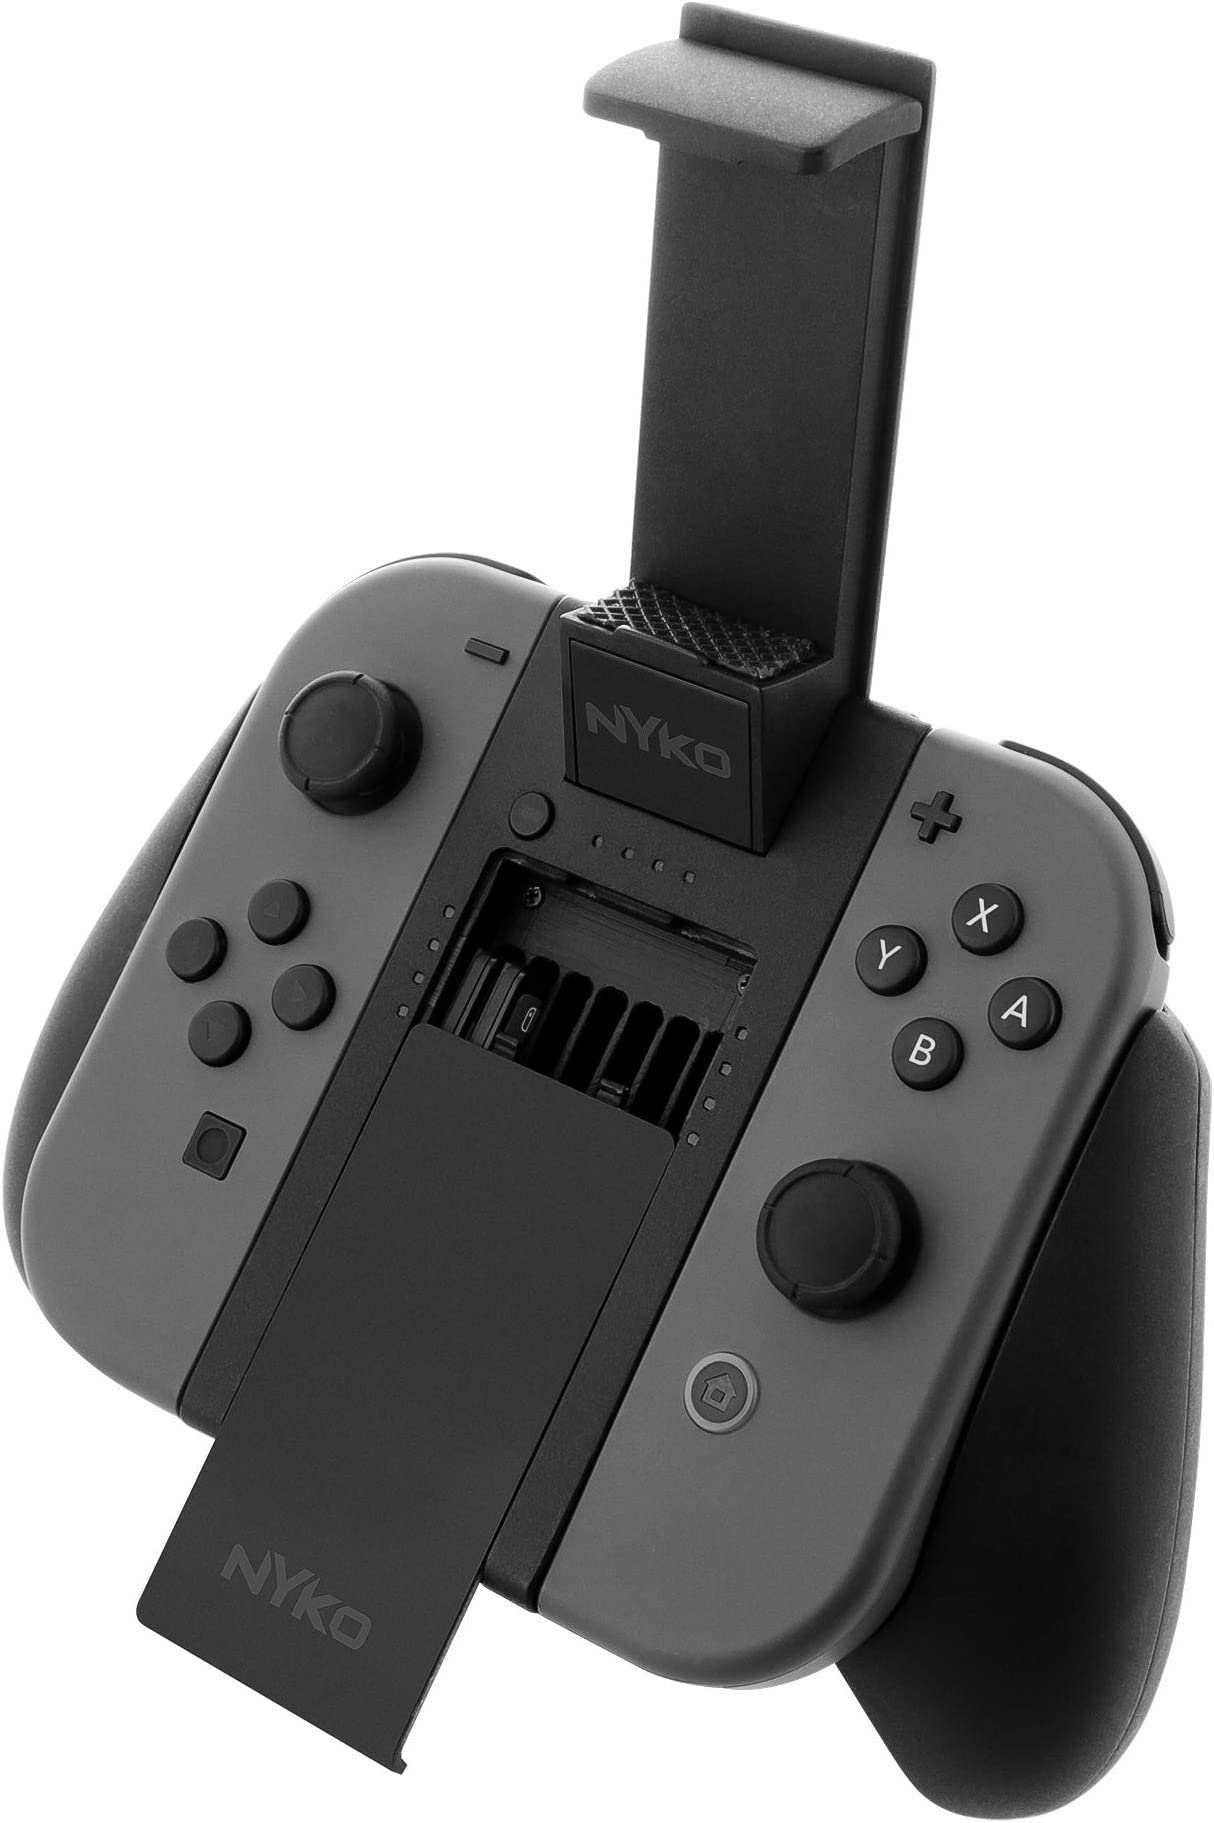 Nyko Clip Grip Power   Joy Con Grip With Cell Phone Mount, Rechargeable Battery Pack, Game Storage And Sd Card Holder For Nintendo Switch by By          Nyko